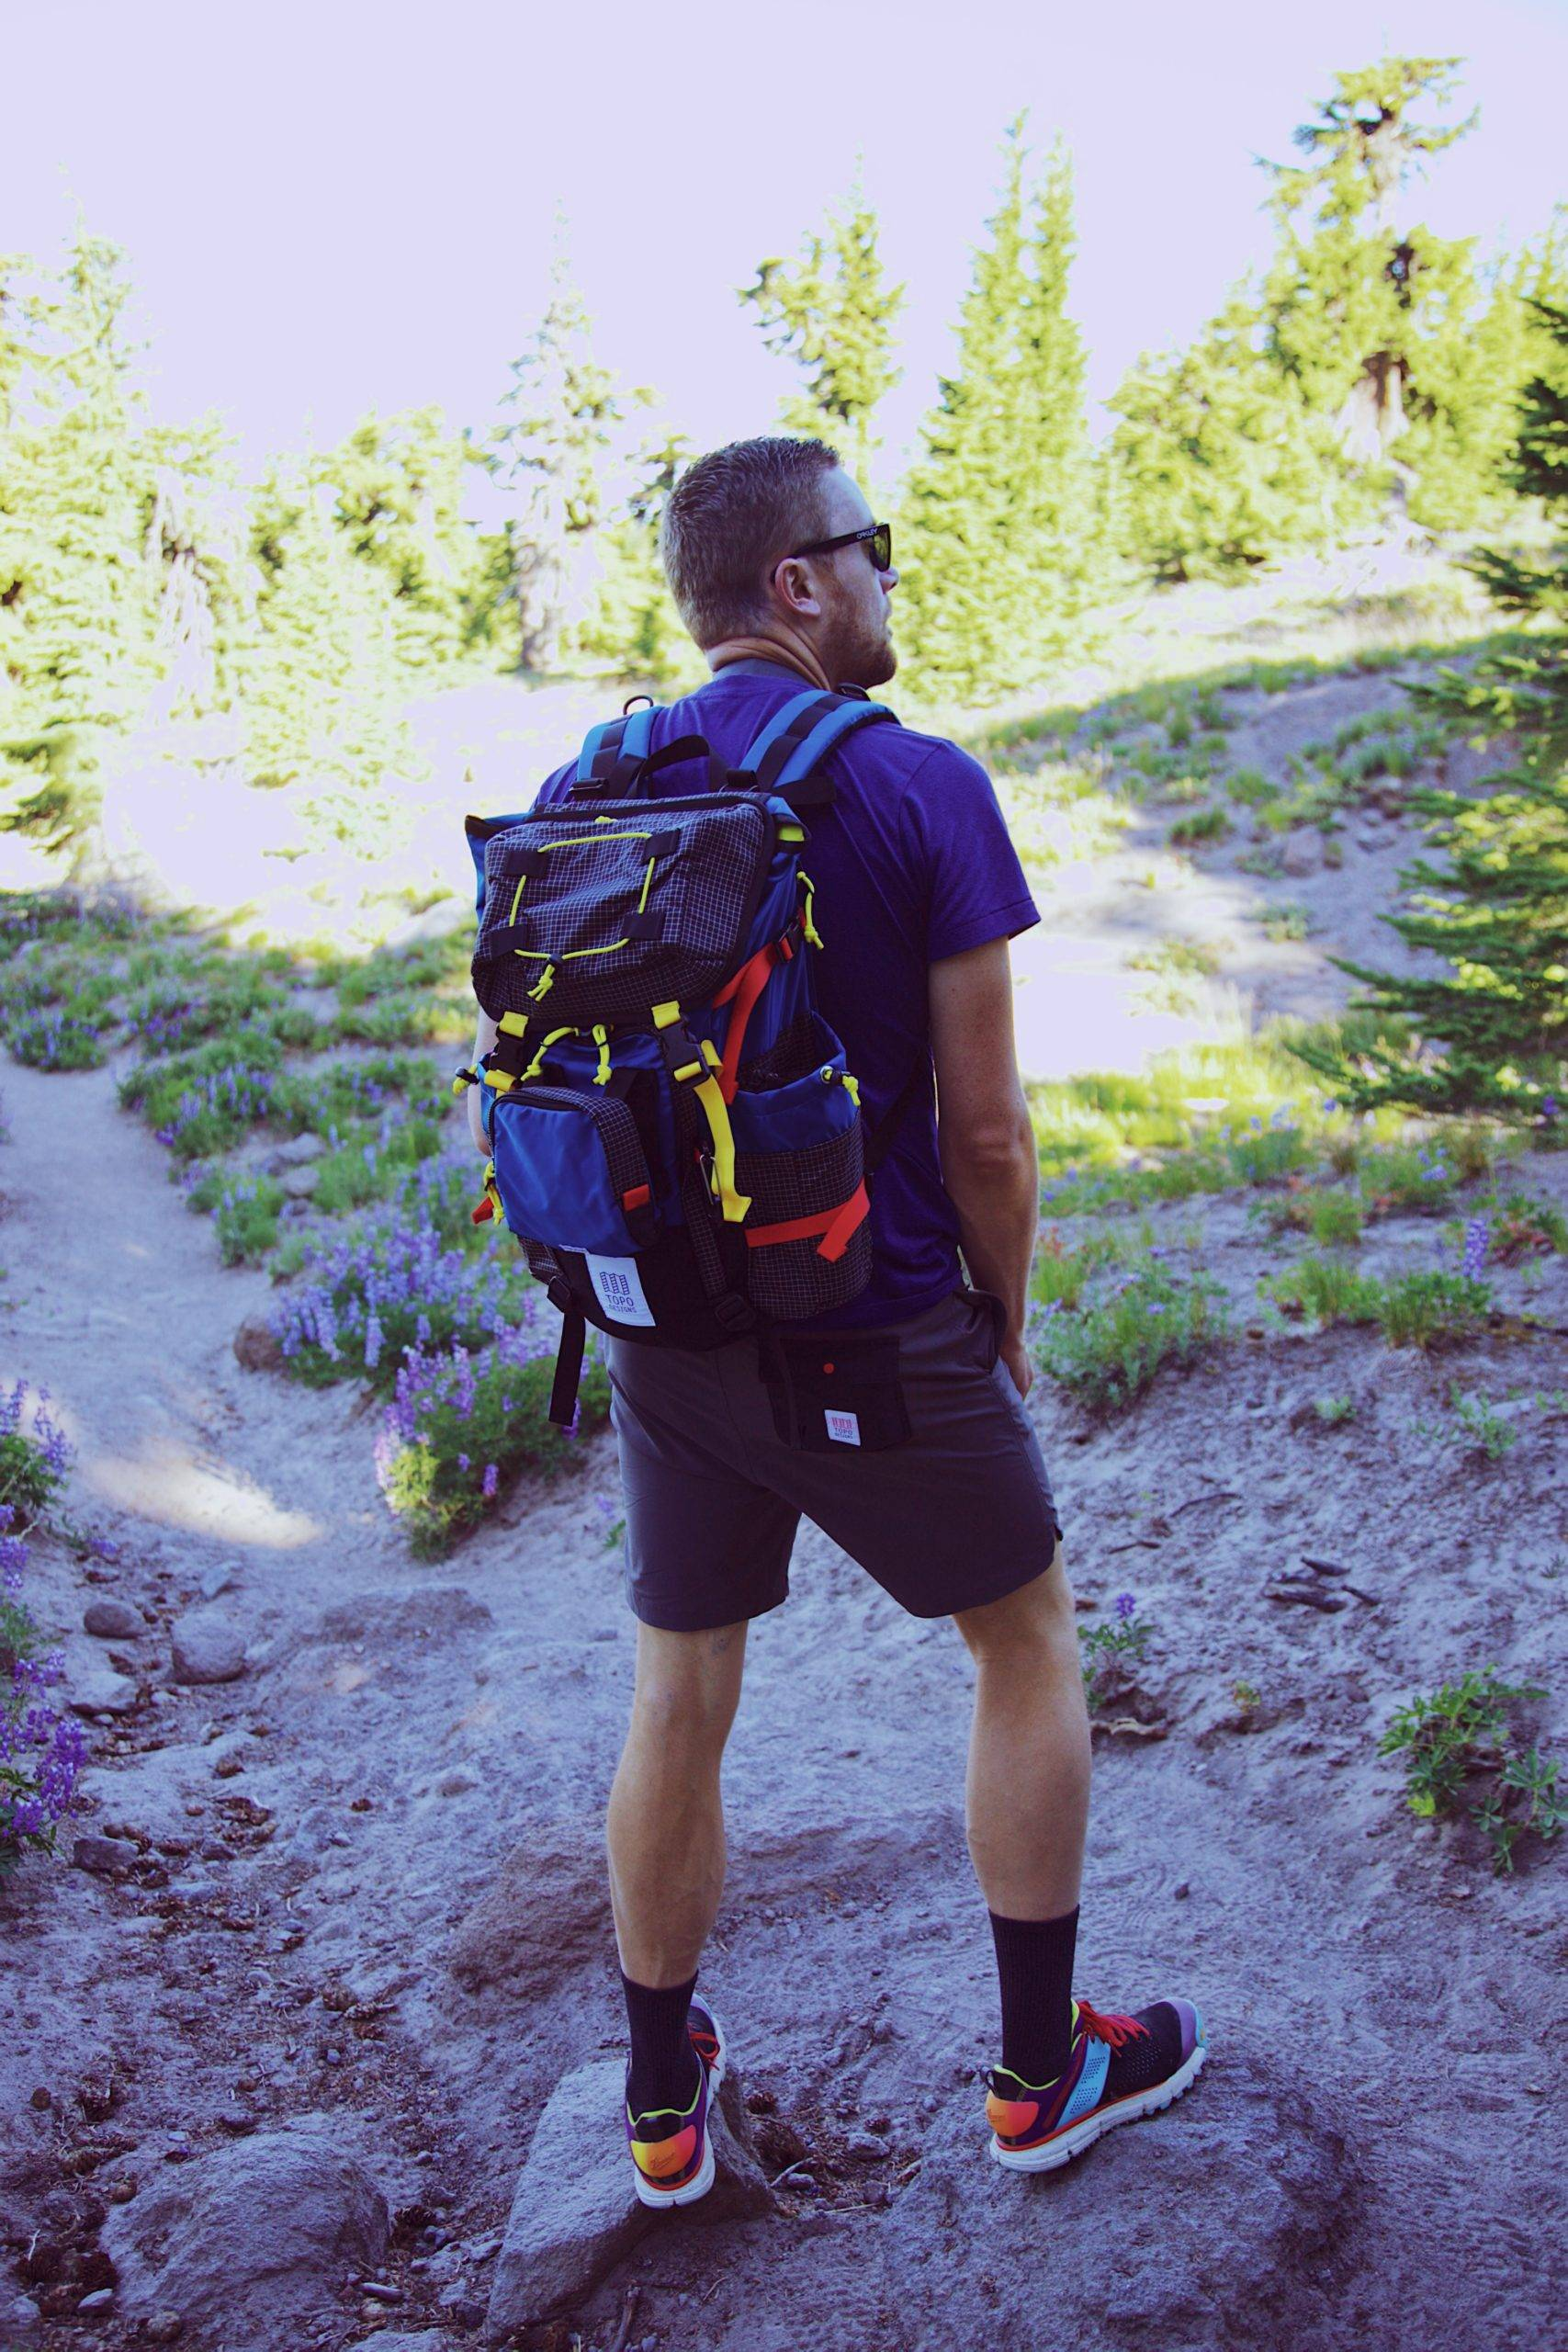 Man on shorts with backpack looking at trees